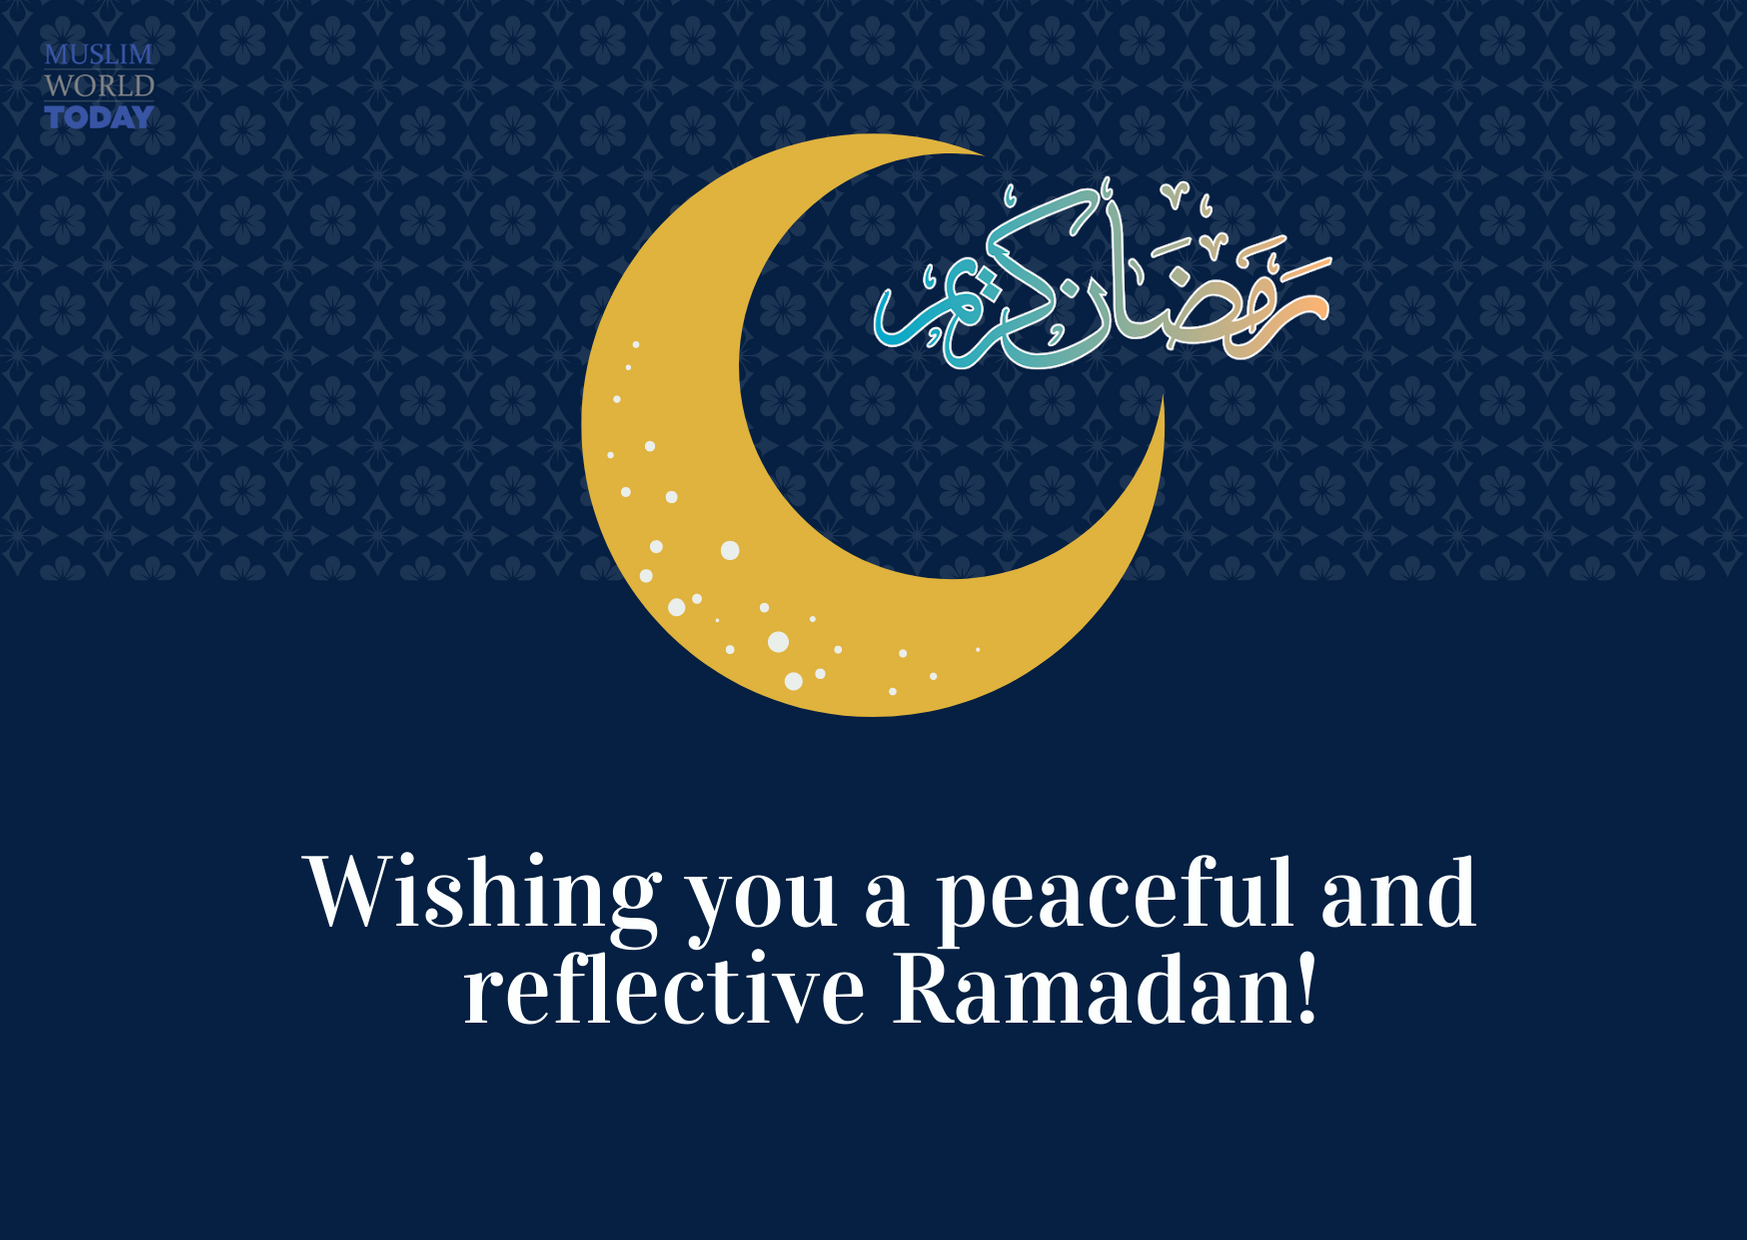 Ramadan - self-reflecting time of the year